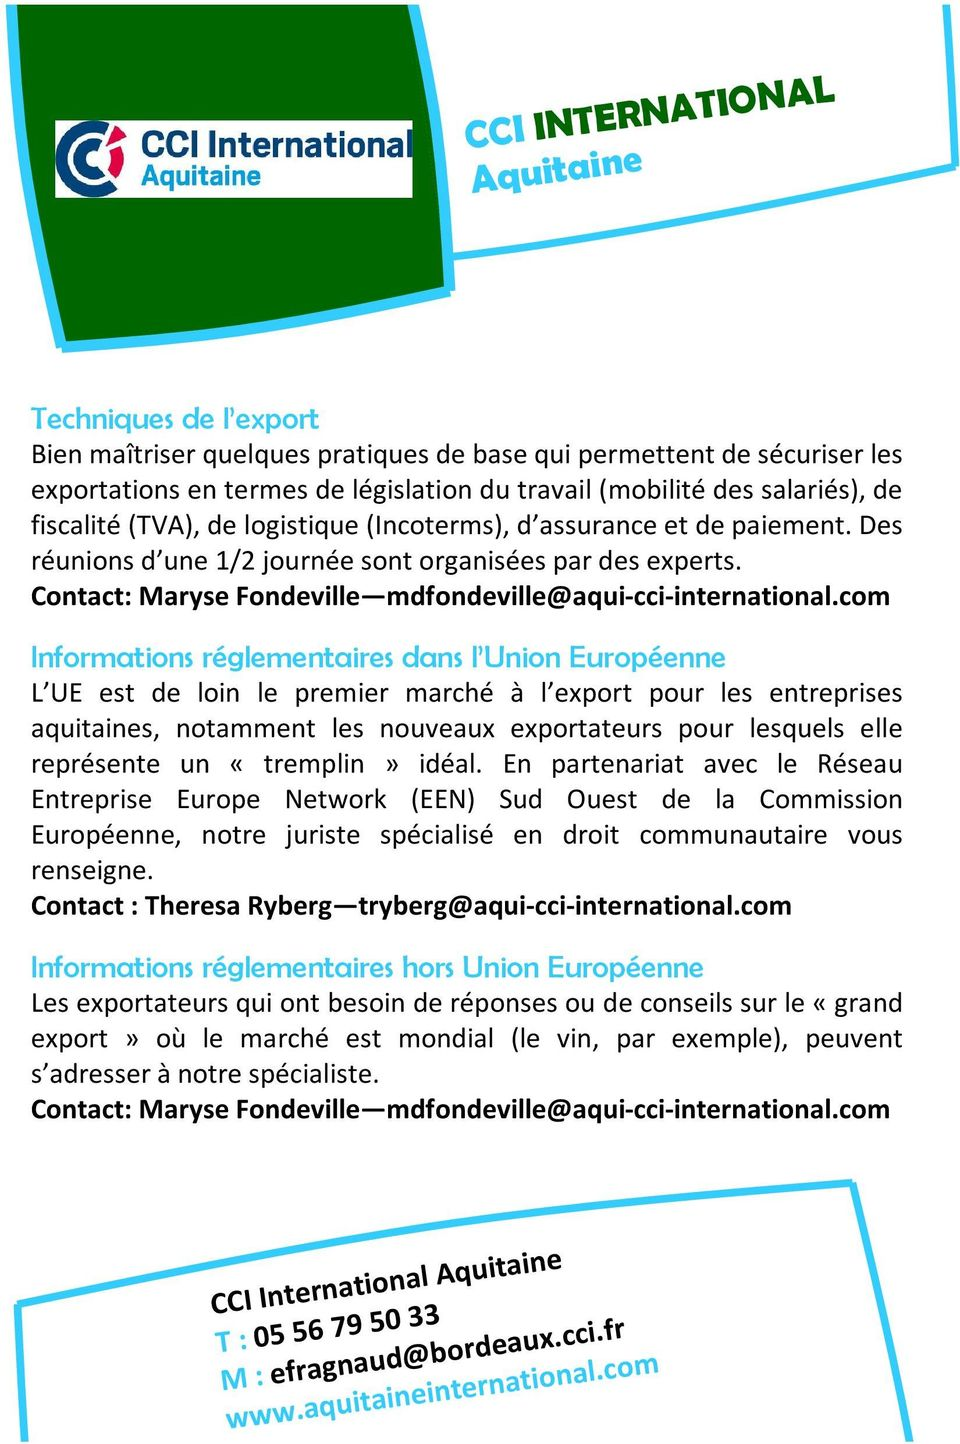 Contact: Maryse Fondeville mdfondeville@aqui-cci-international.